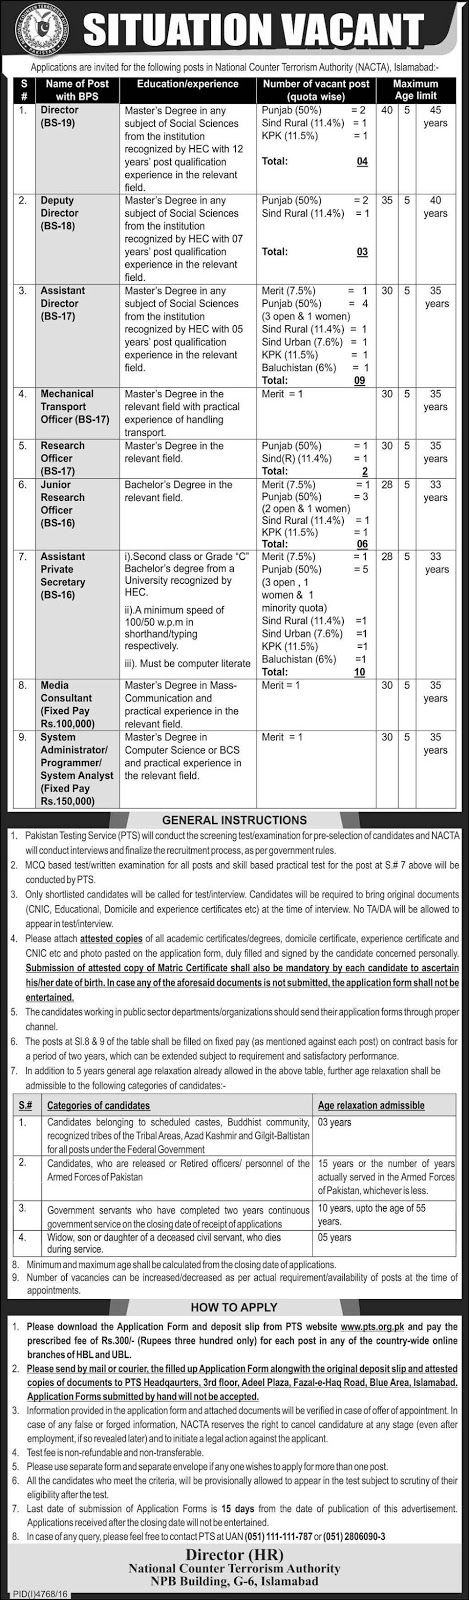 National Counter Terrorism Authority Islamabad Govt Jobs